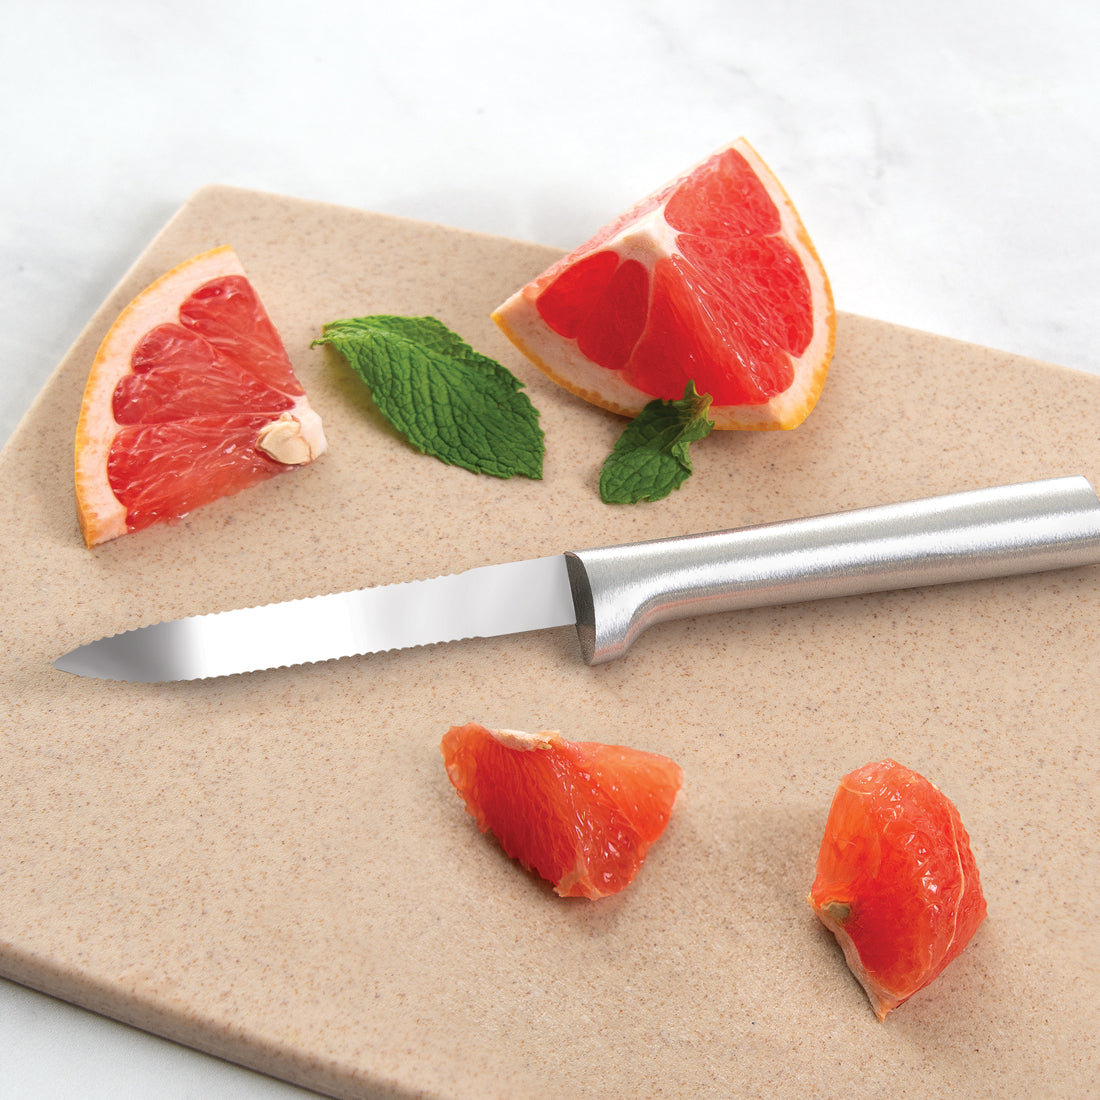 Grapefruit Knife cutting grapefruits